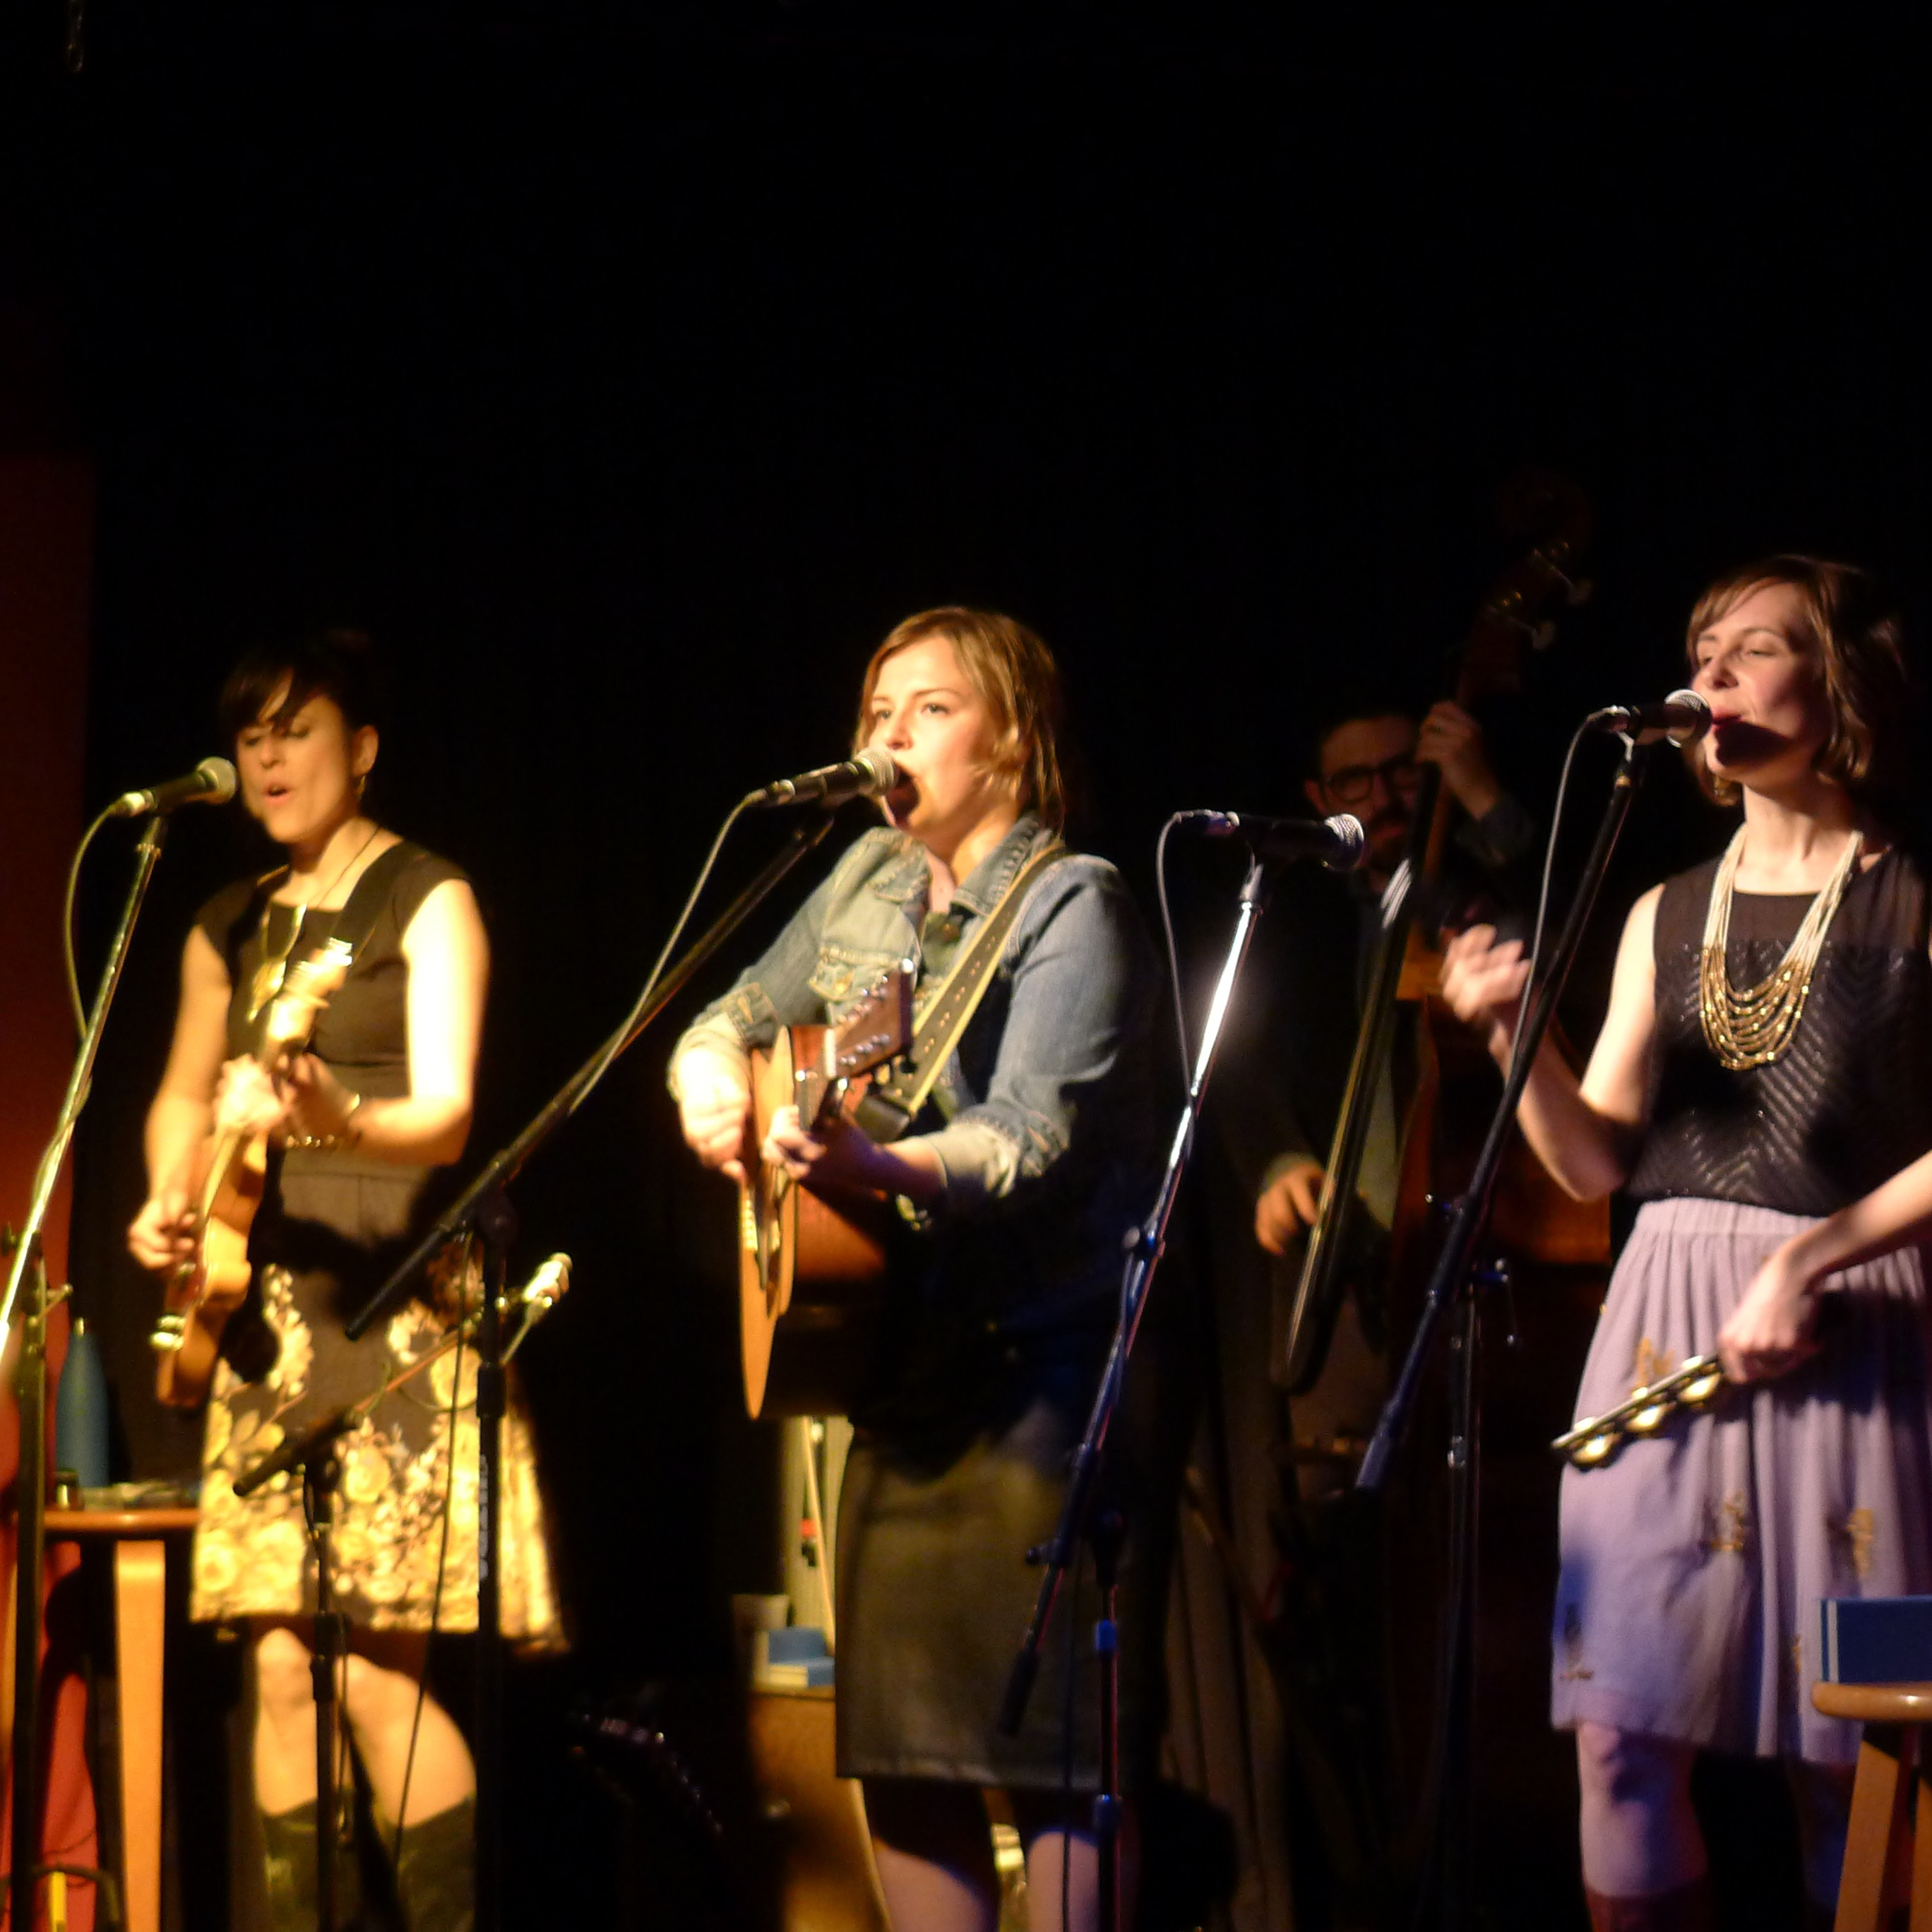 The Good Lovelies - SHANNON WEBB-CAMPBELL